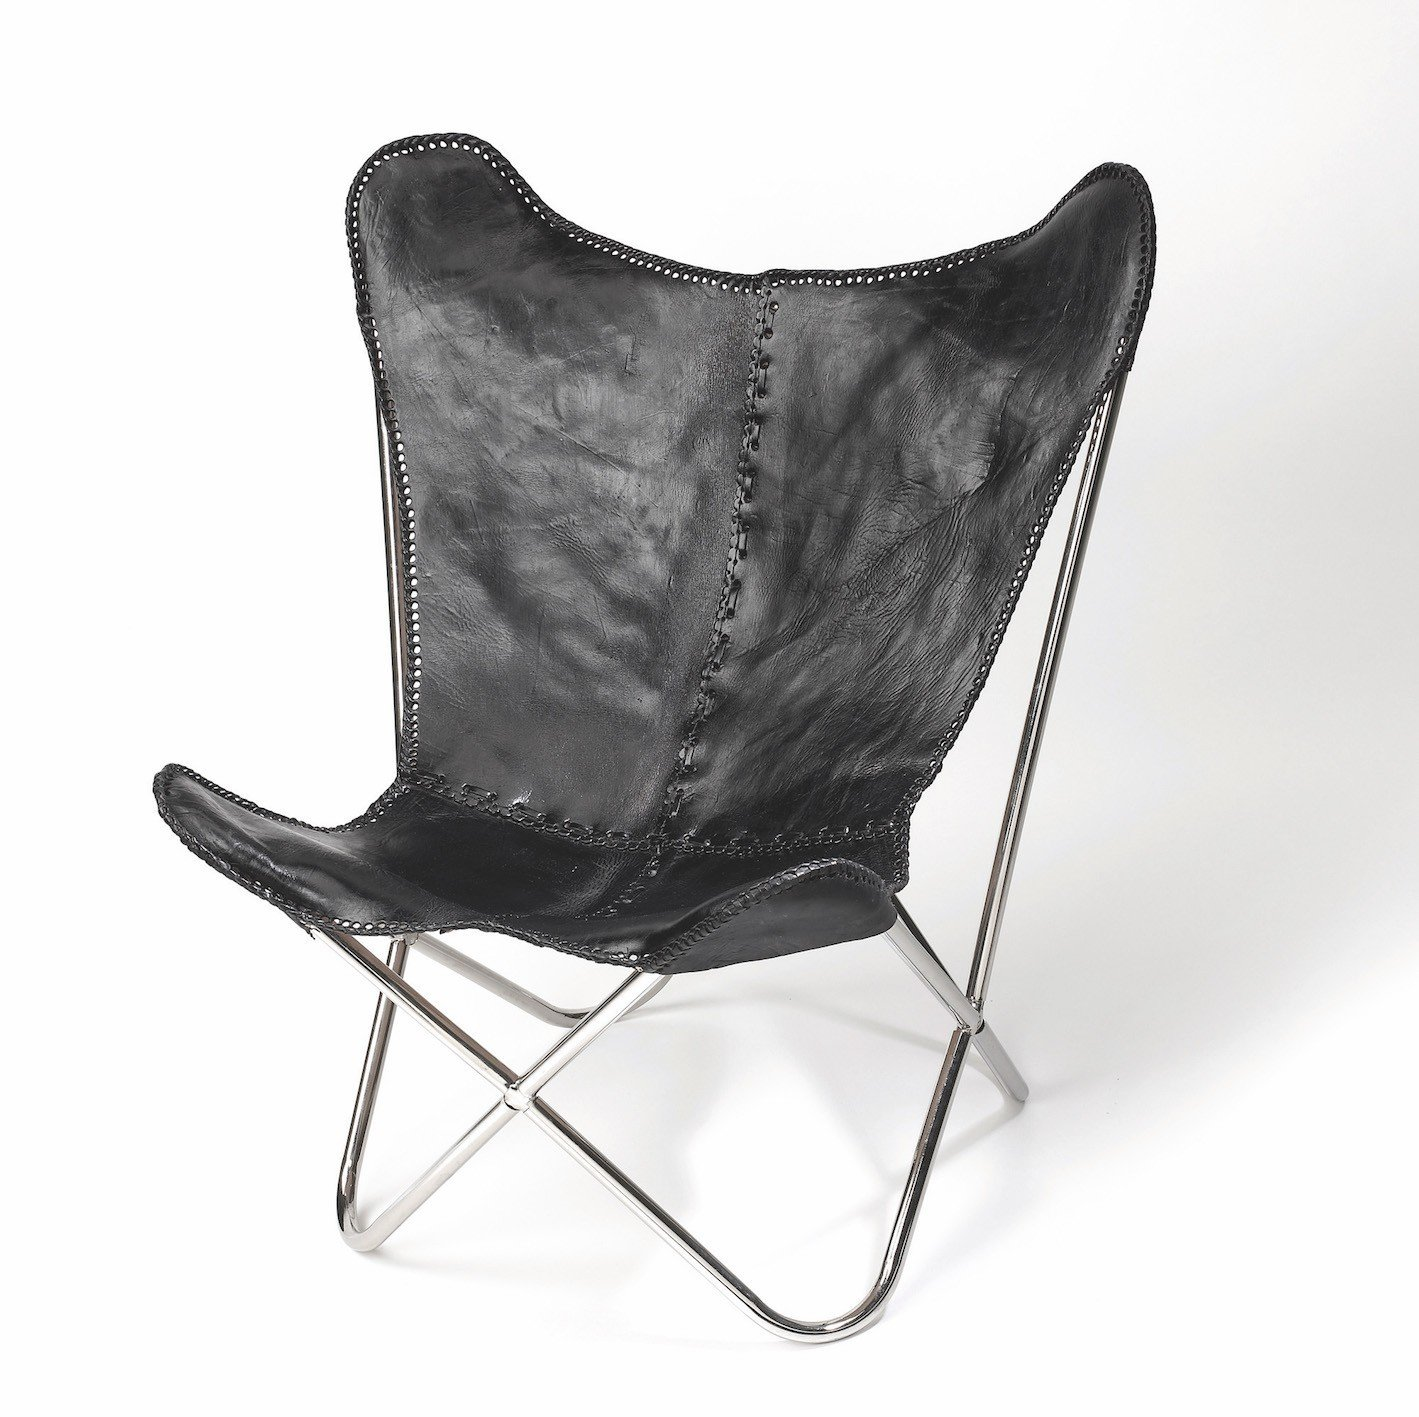 Butterfly chair black - Butterfly Chair Black 1